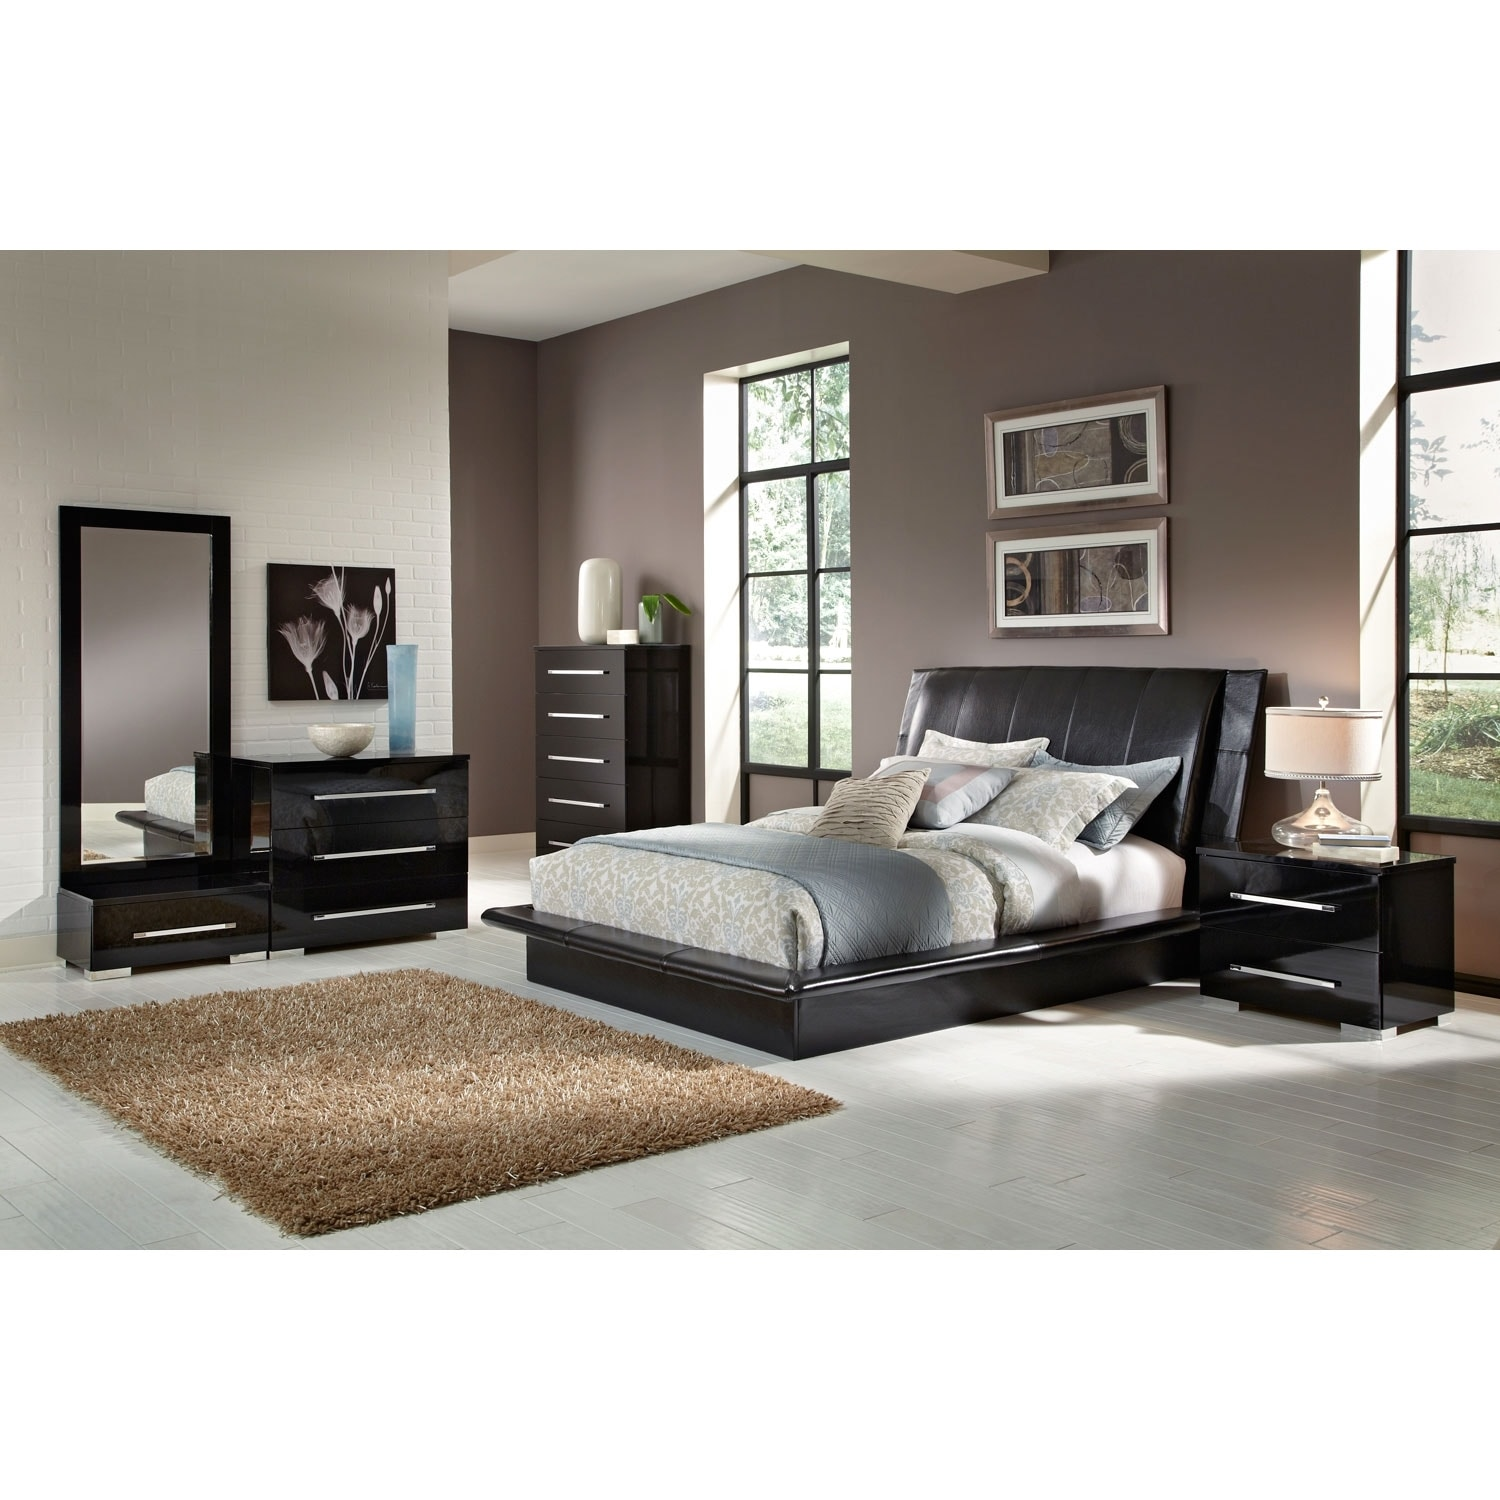 Dimora 7-Piece Queen Upholstered Bedroom Set - Black | American ...